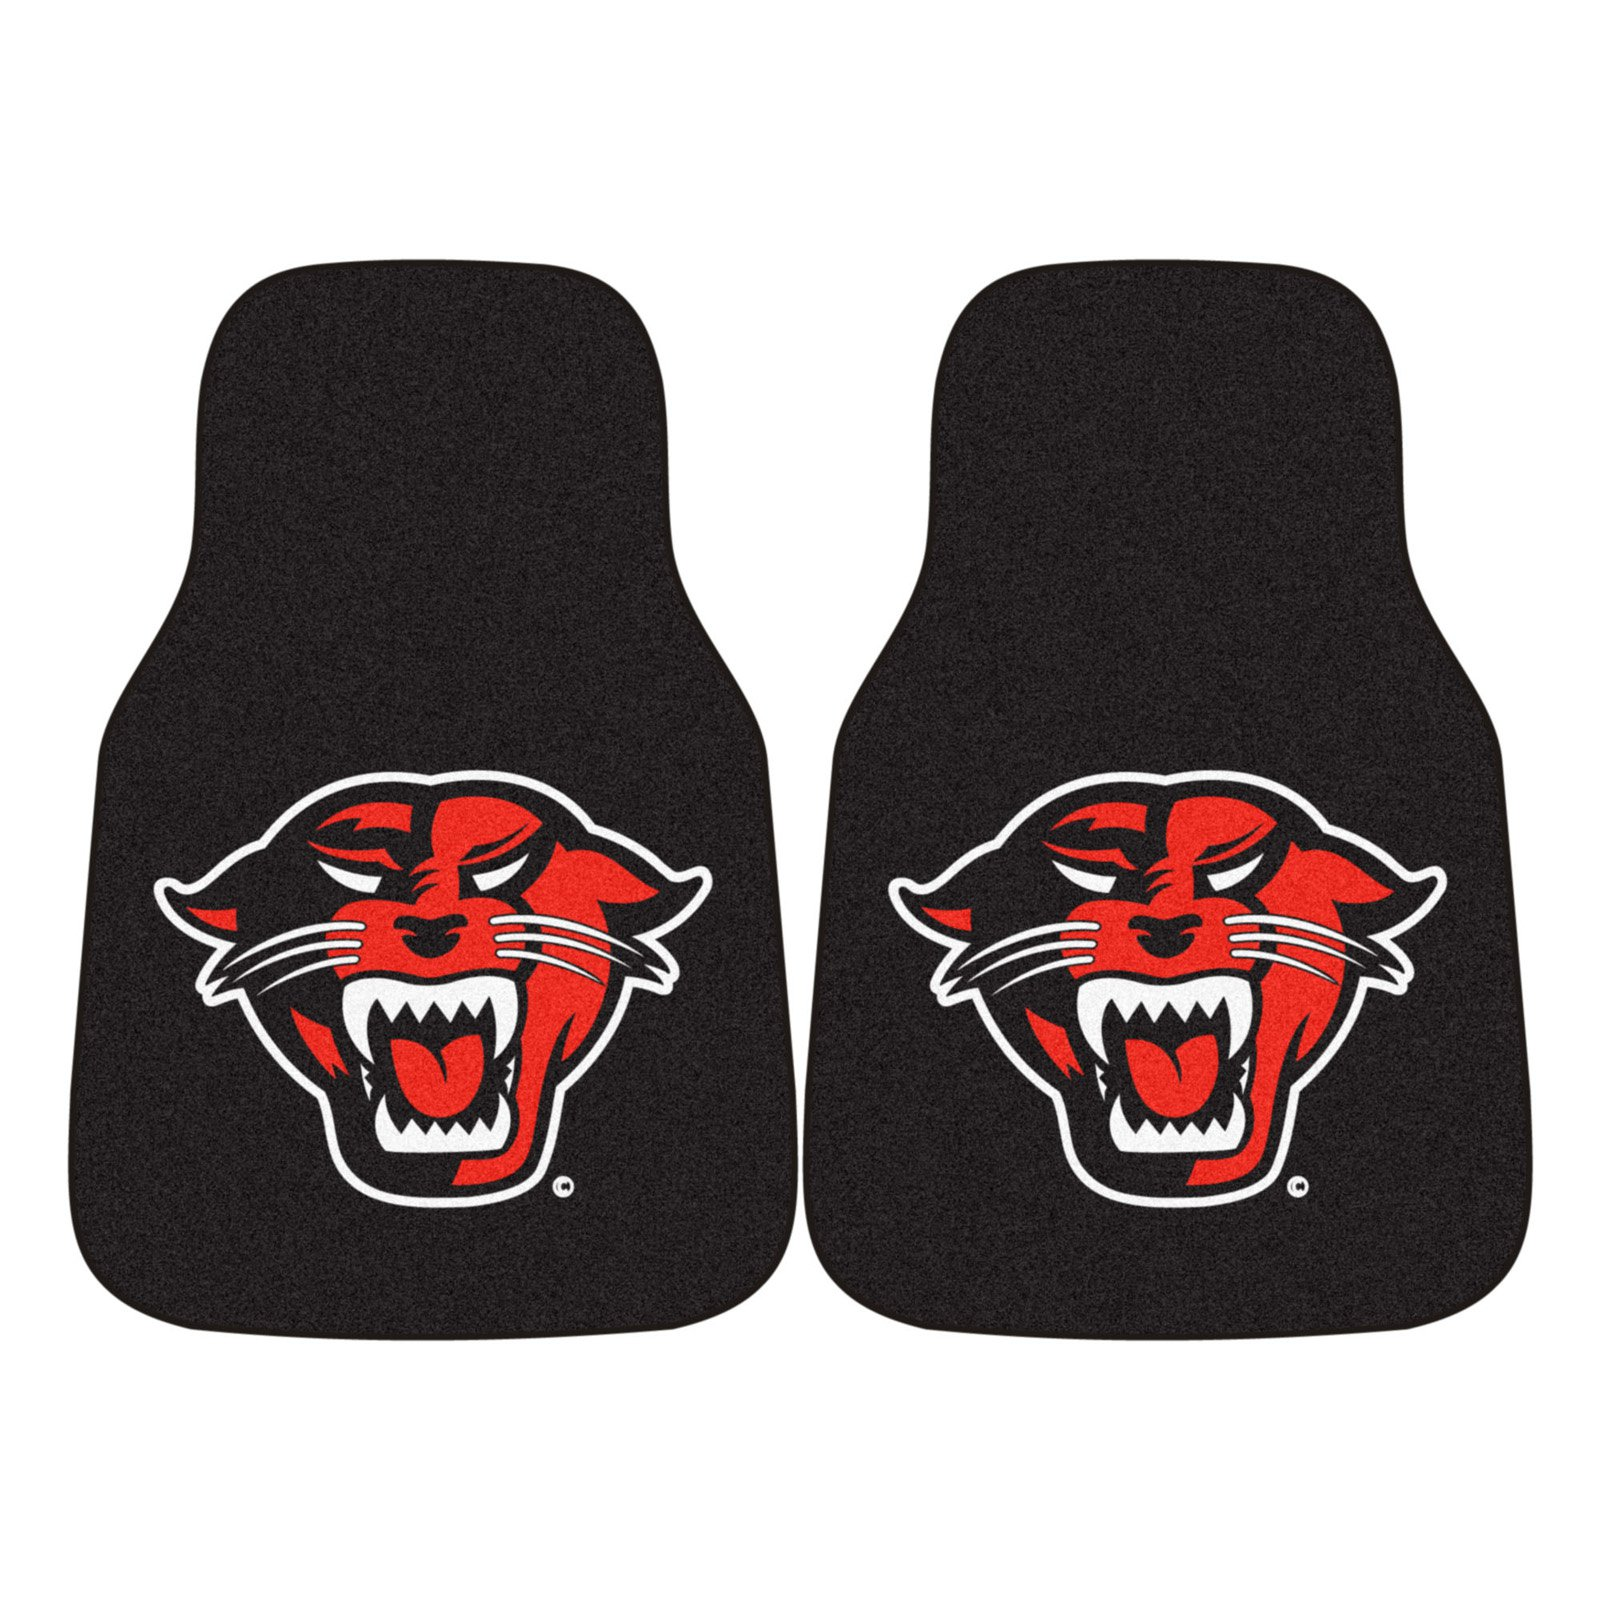 Fan Mats NCAA Carpeted Car Mat - Set of 2